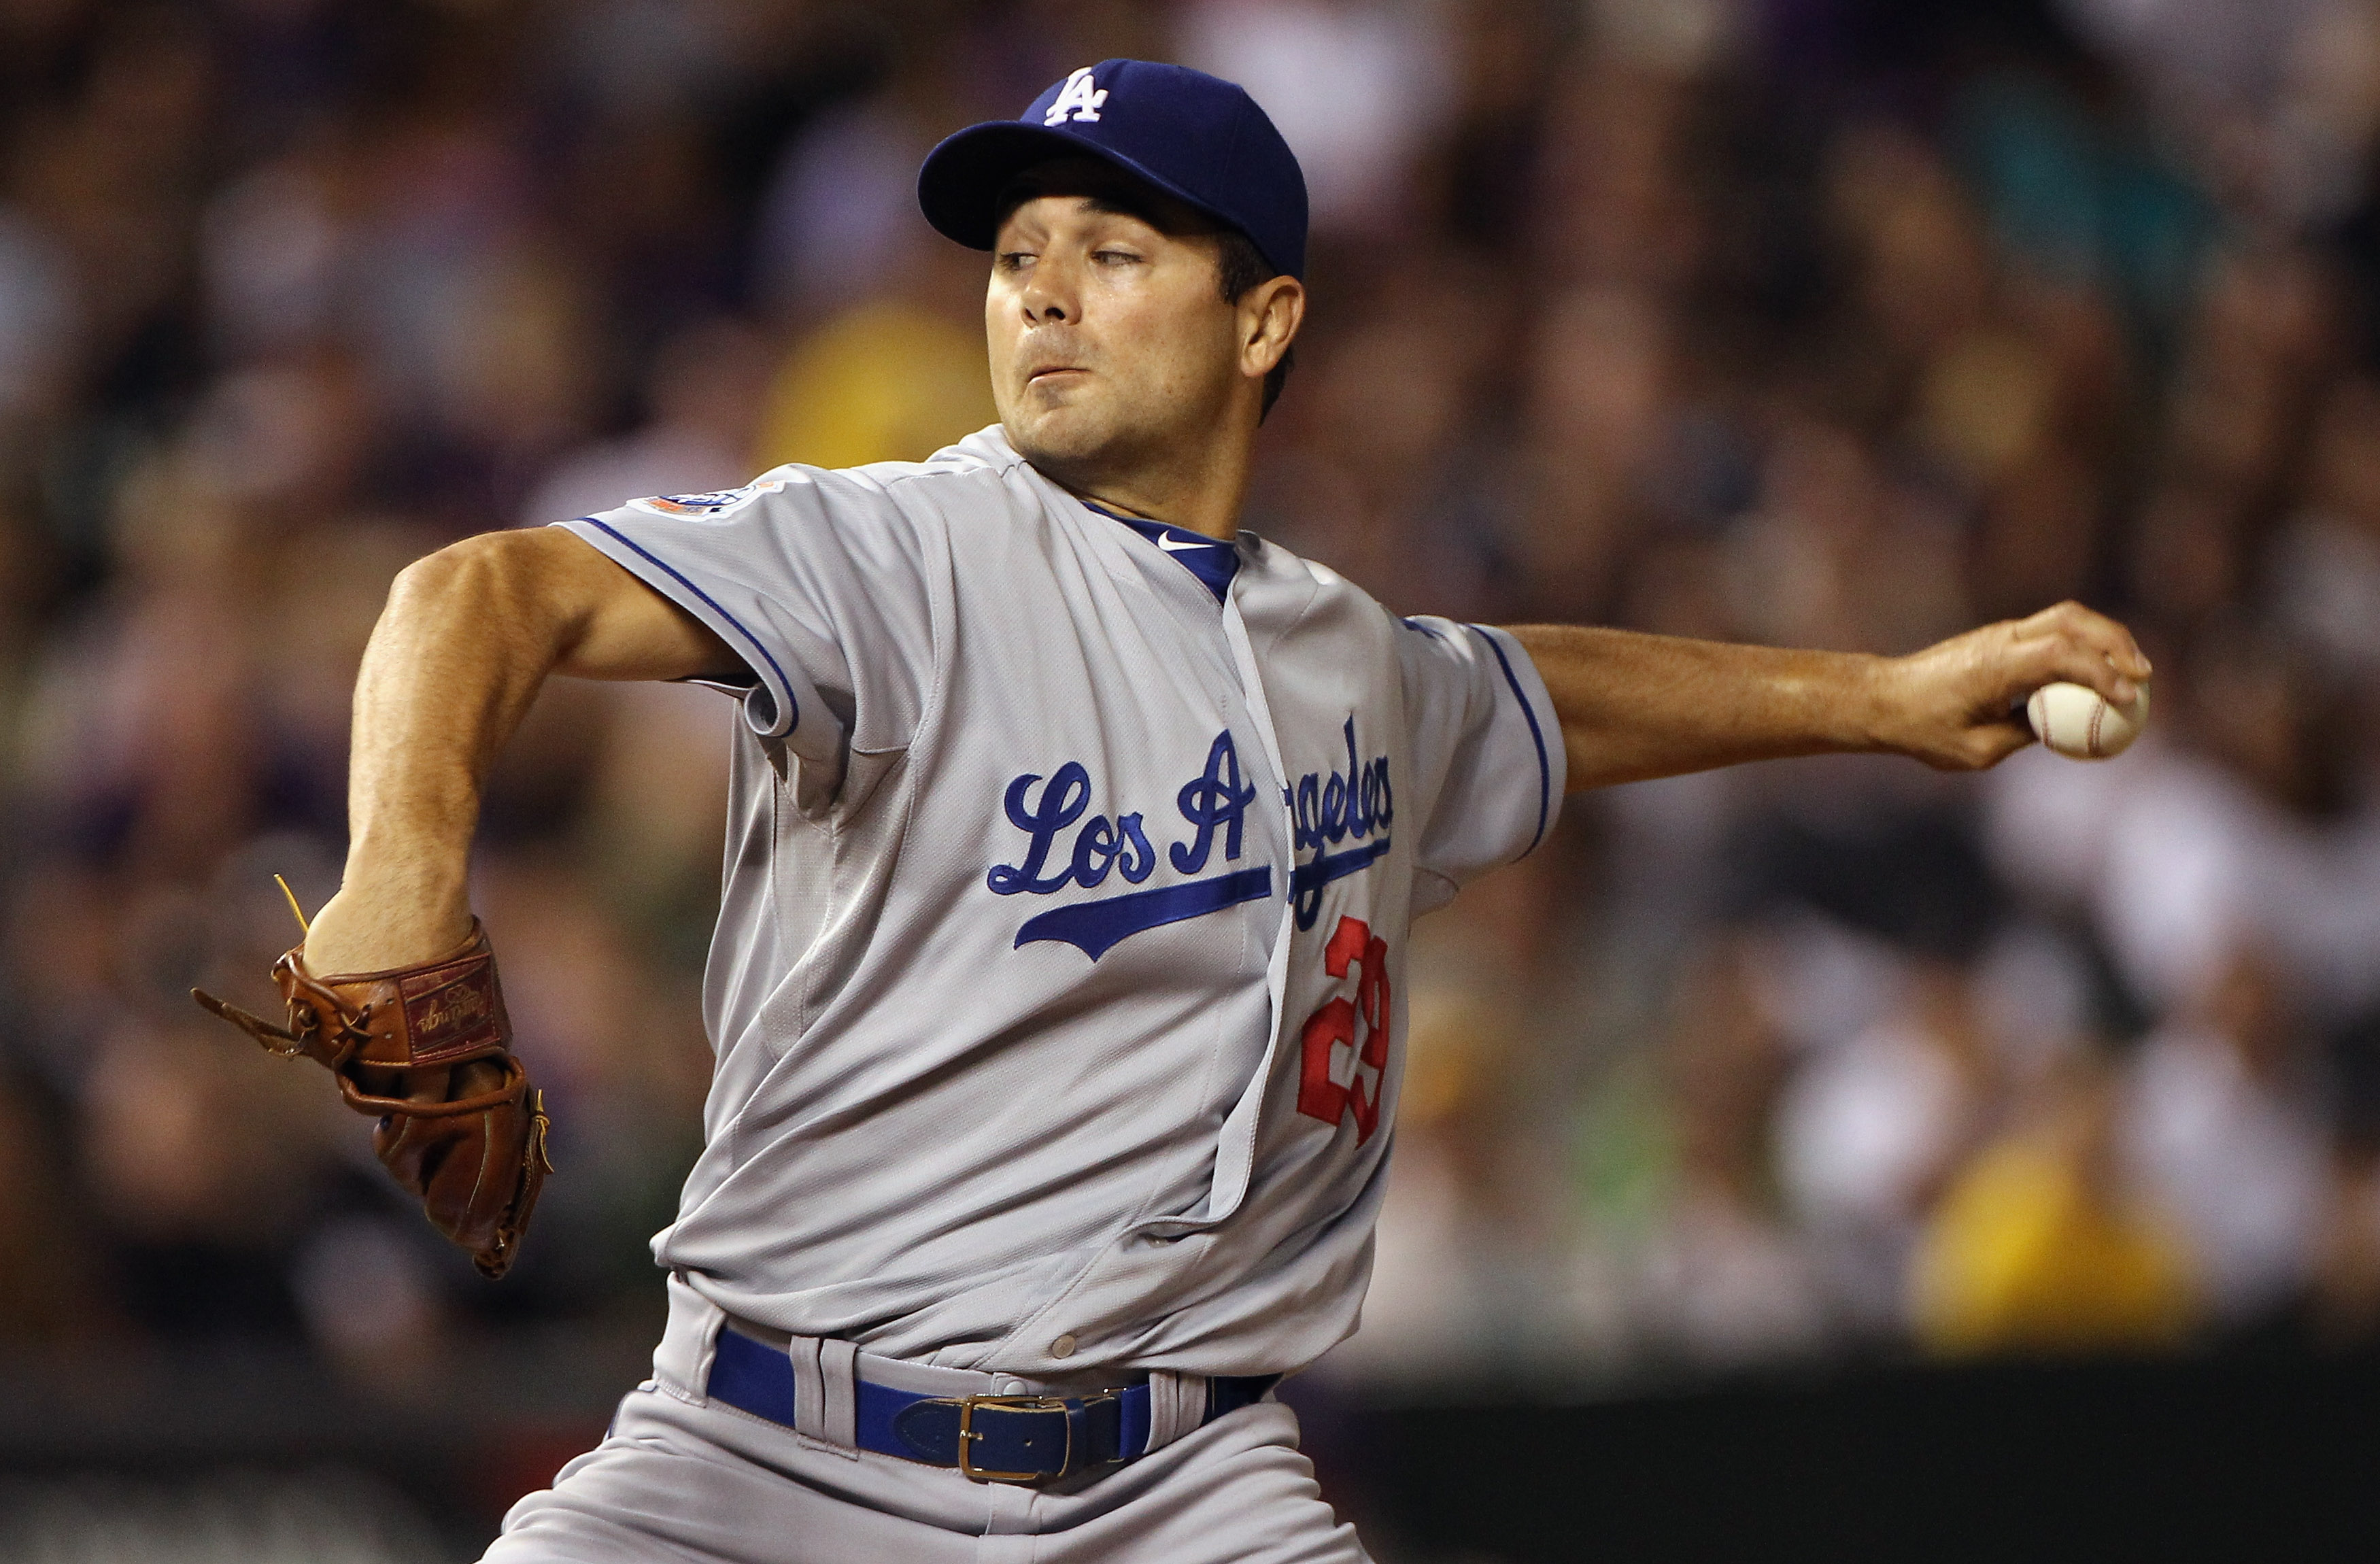 DENVER - SEPTEMBER 27:  Starting pitcher Ted Lilly #29 of the Los Angeles Dodgers delivers against the Colorado Rockies at Coors Field on September 25, 2010 in Denver, Colorado.  (Photo by Doug Pensinger/Getty Images)